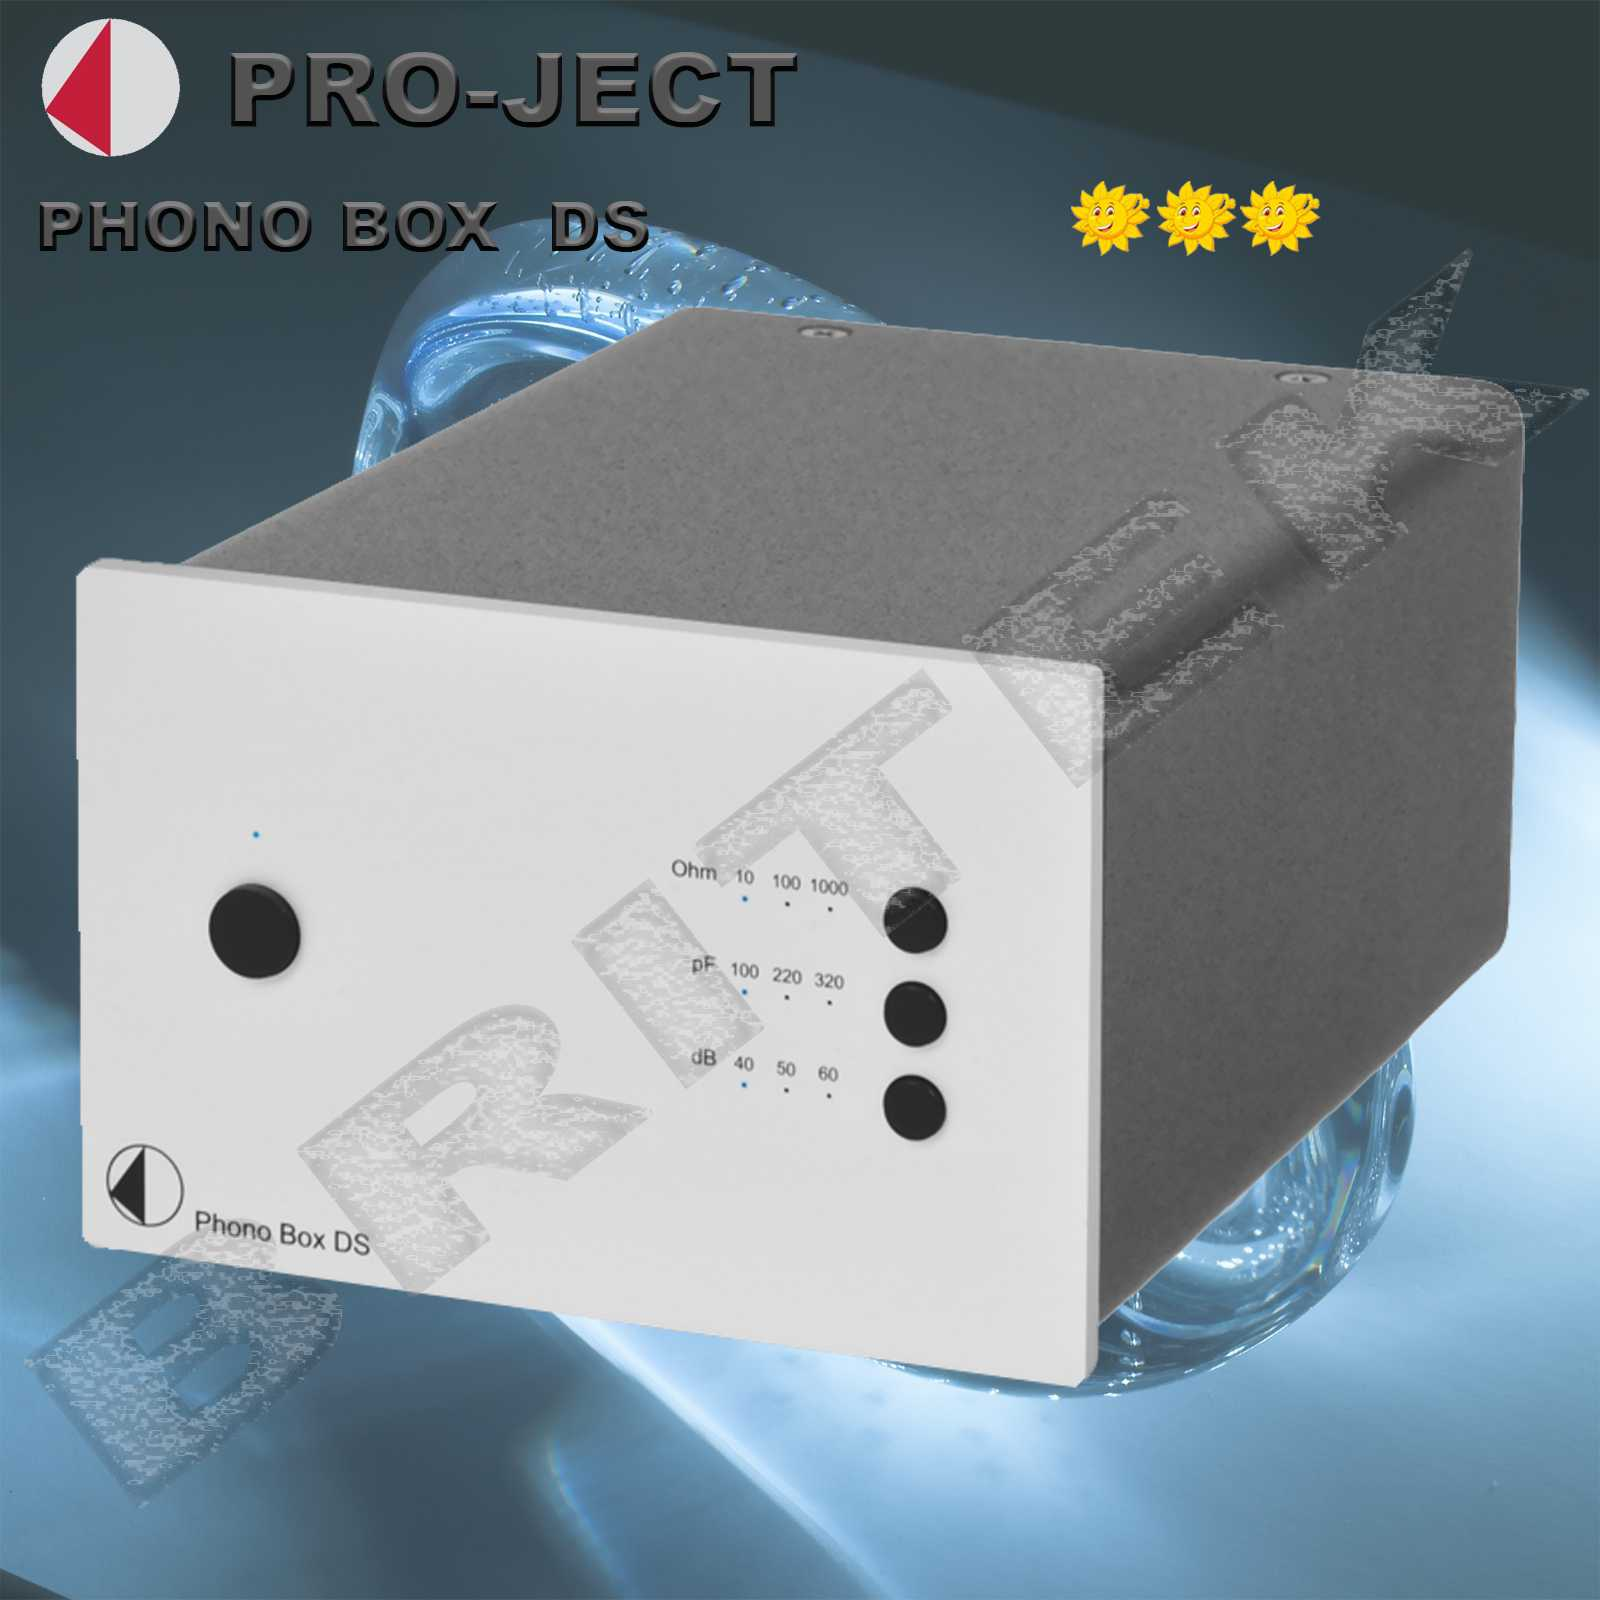 PRO-JECT PHONO BOX-DS